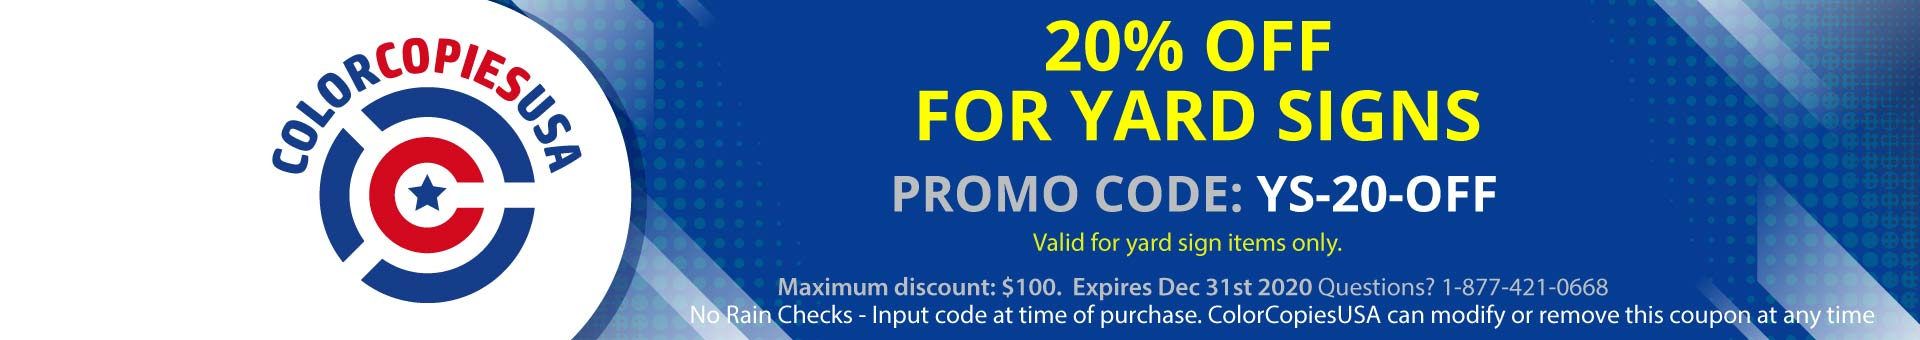 20% Discount on Yard Signs